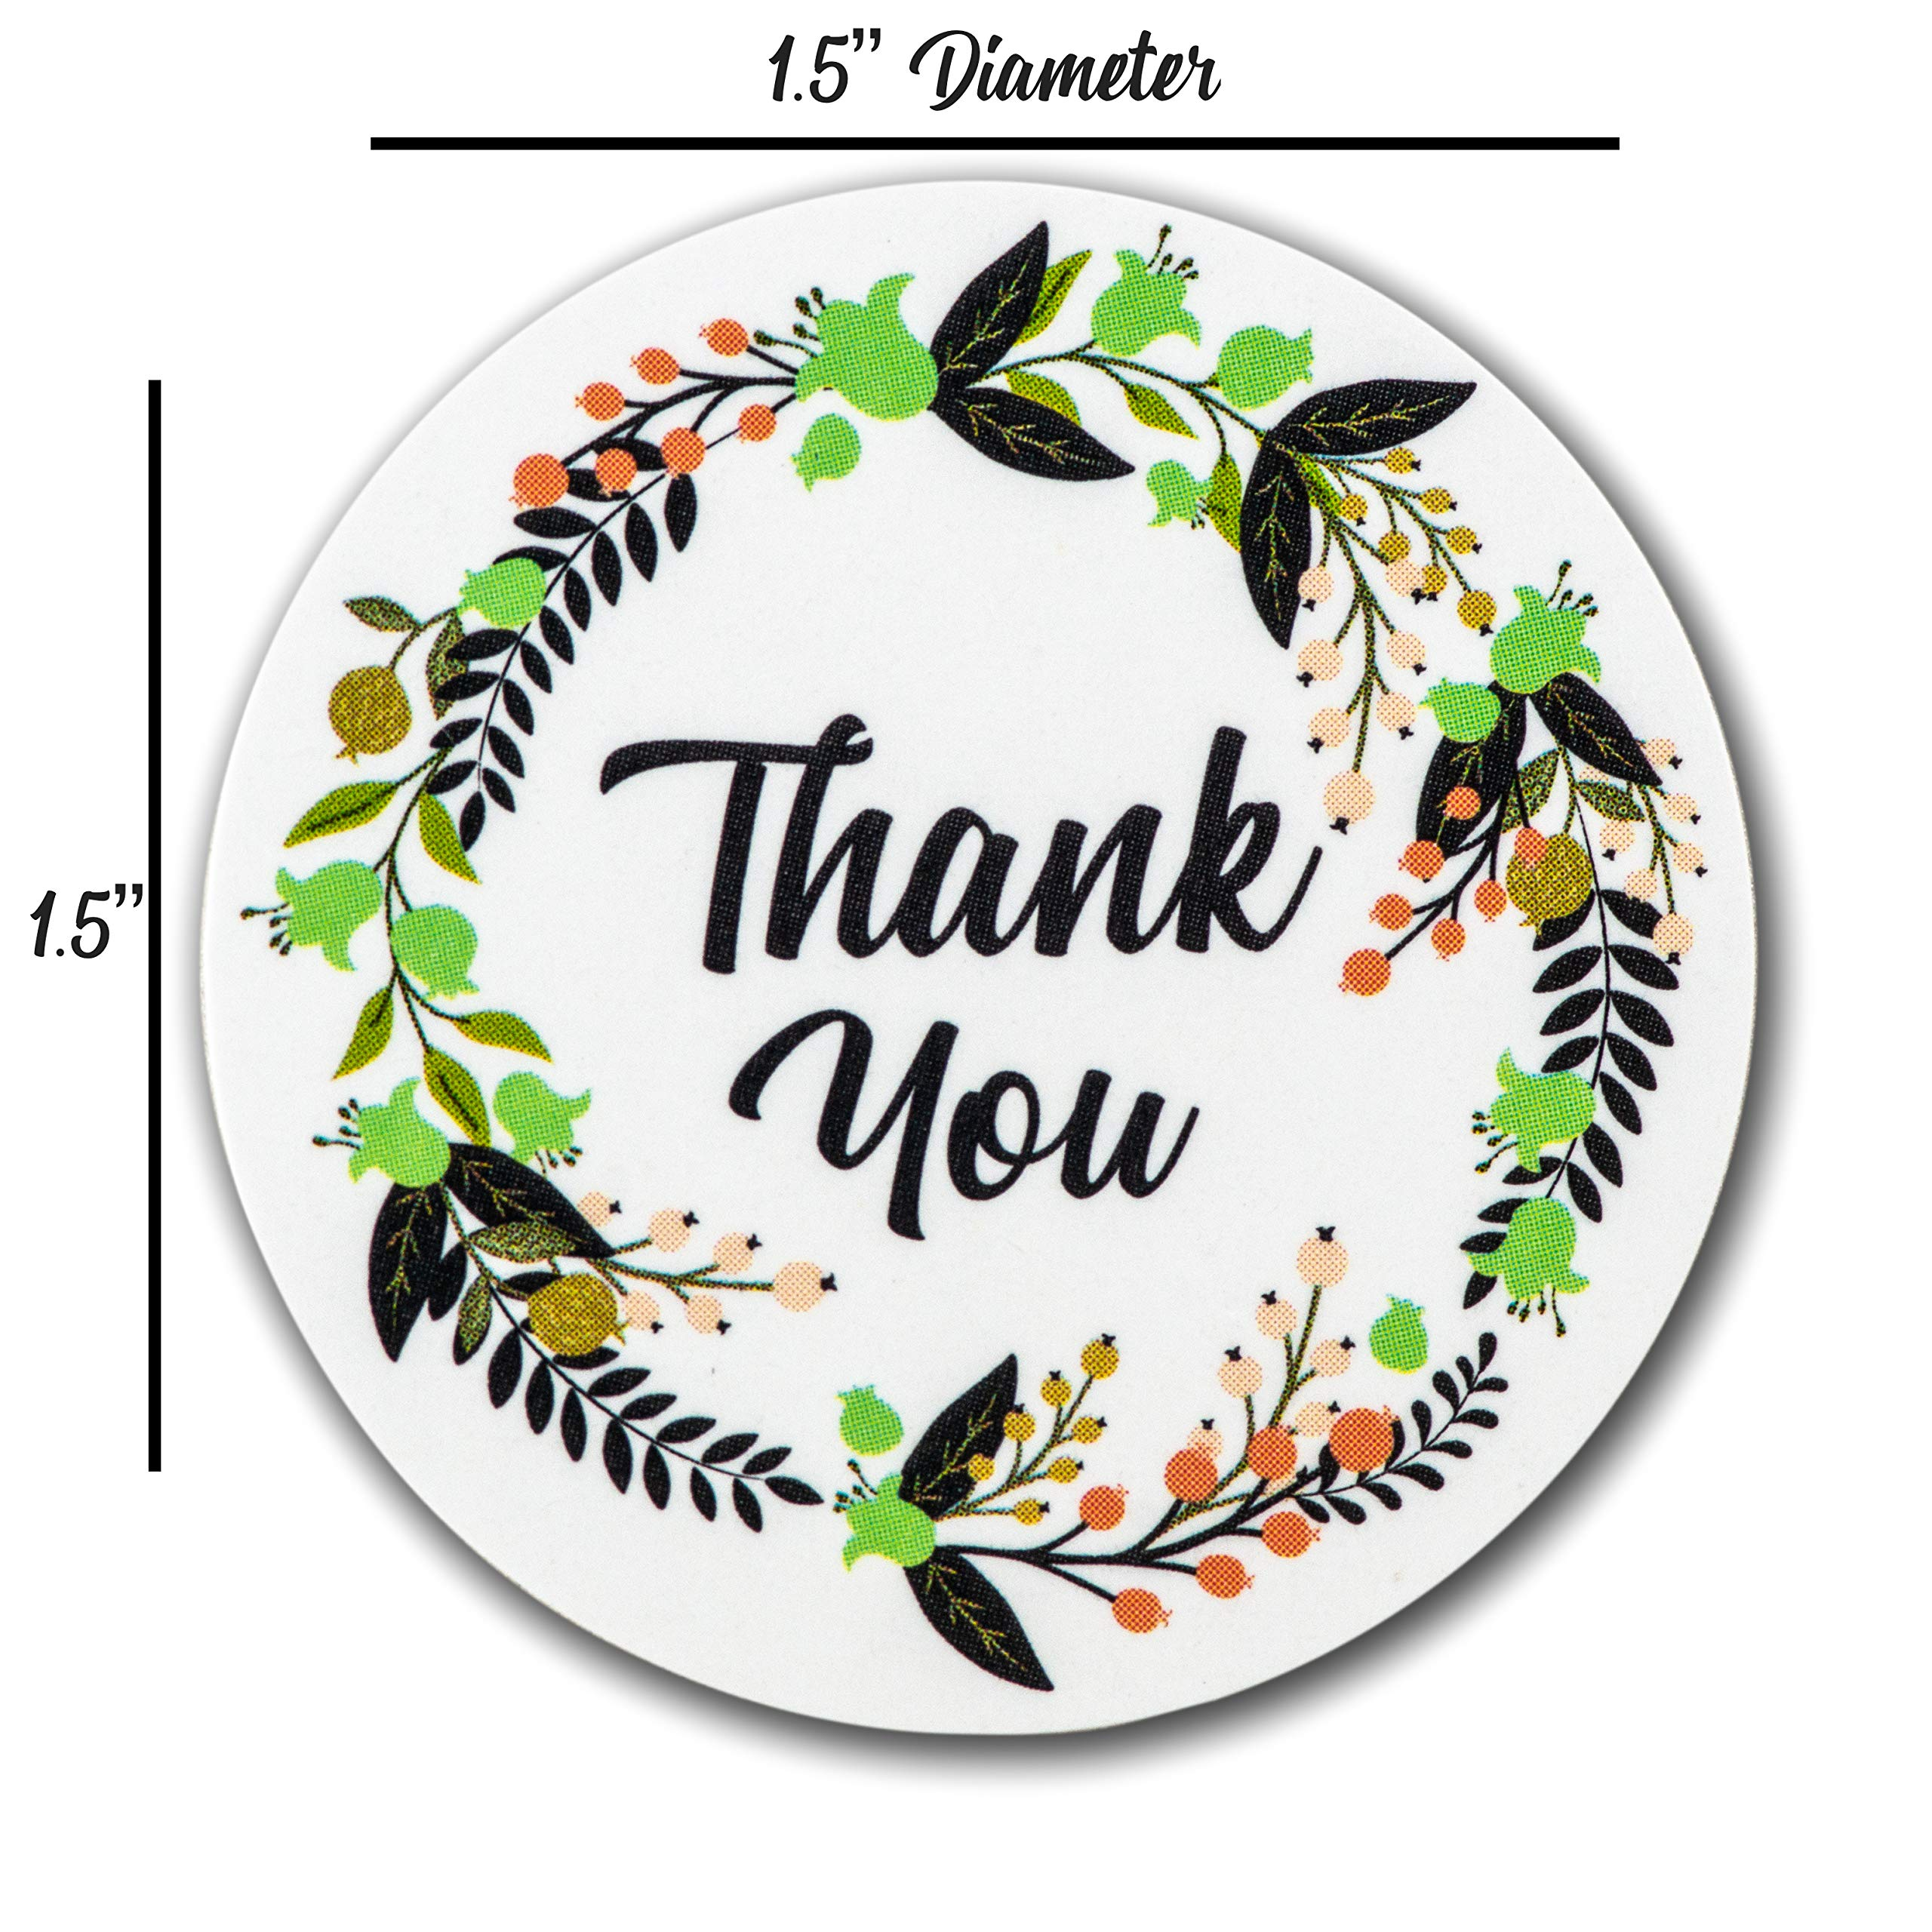 Ivy Paper Co Modern Floral Thank You Stickers | Roll of 1000 | 1.5'' Flower Envelope Sealers | Beautiful Circle Labels for Business, Gifts, Bridal, Thank You Cards Notes | Boho Gift Tags |Cute Stickers by Ivy Paper Co (Image #7)